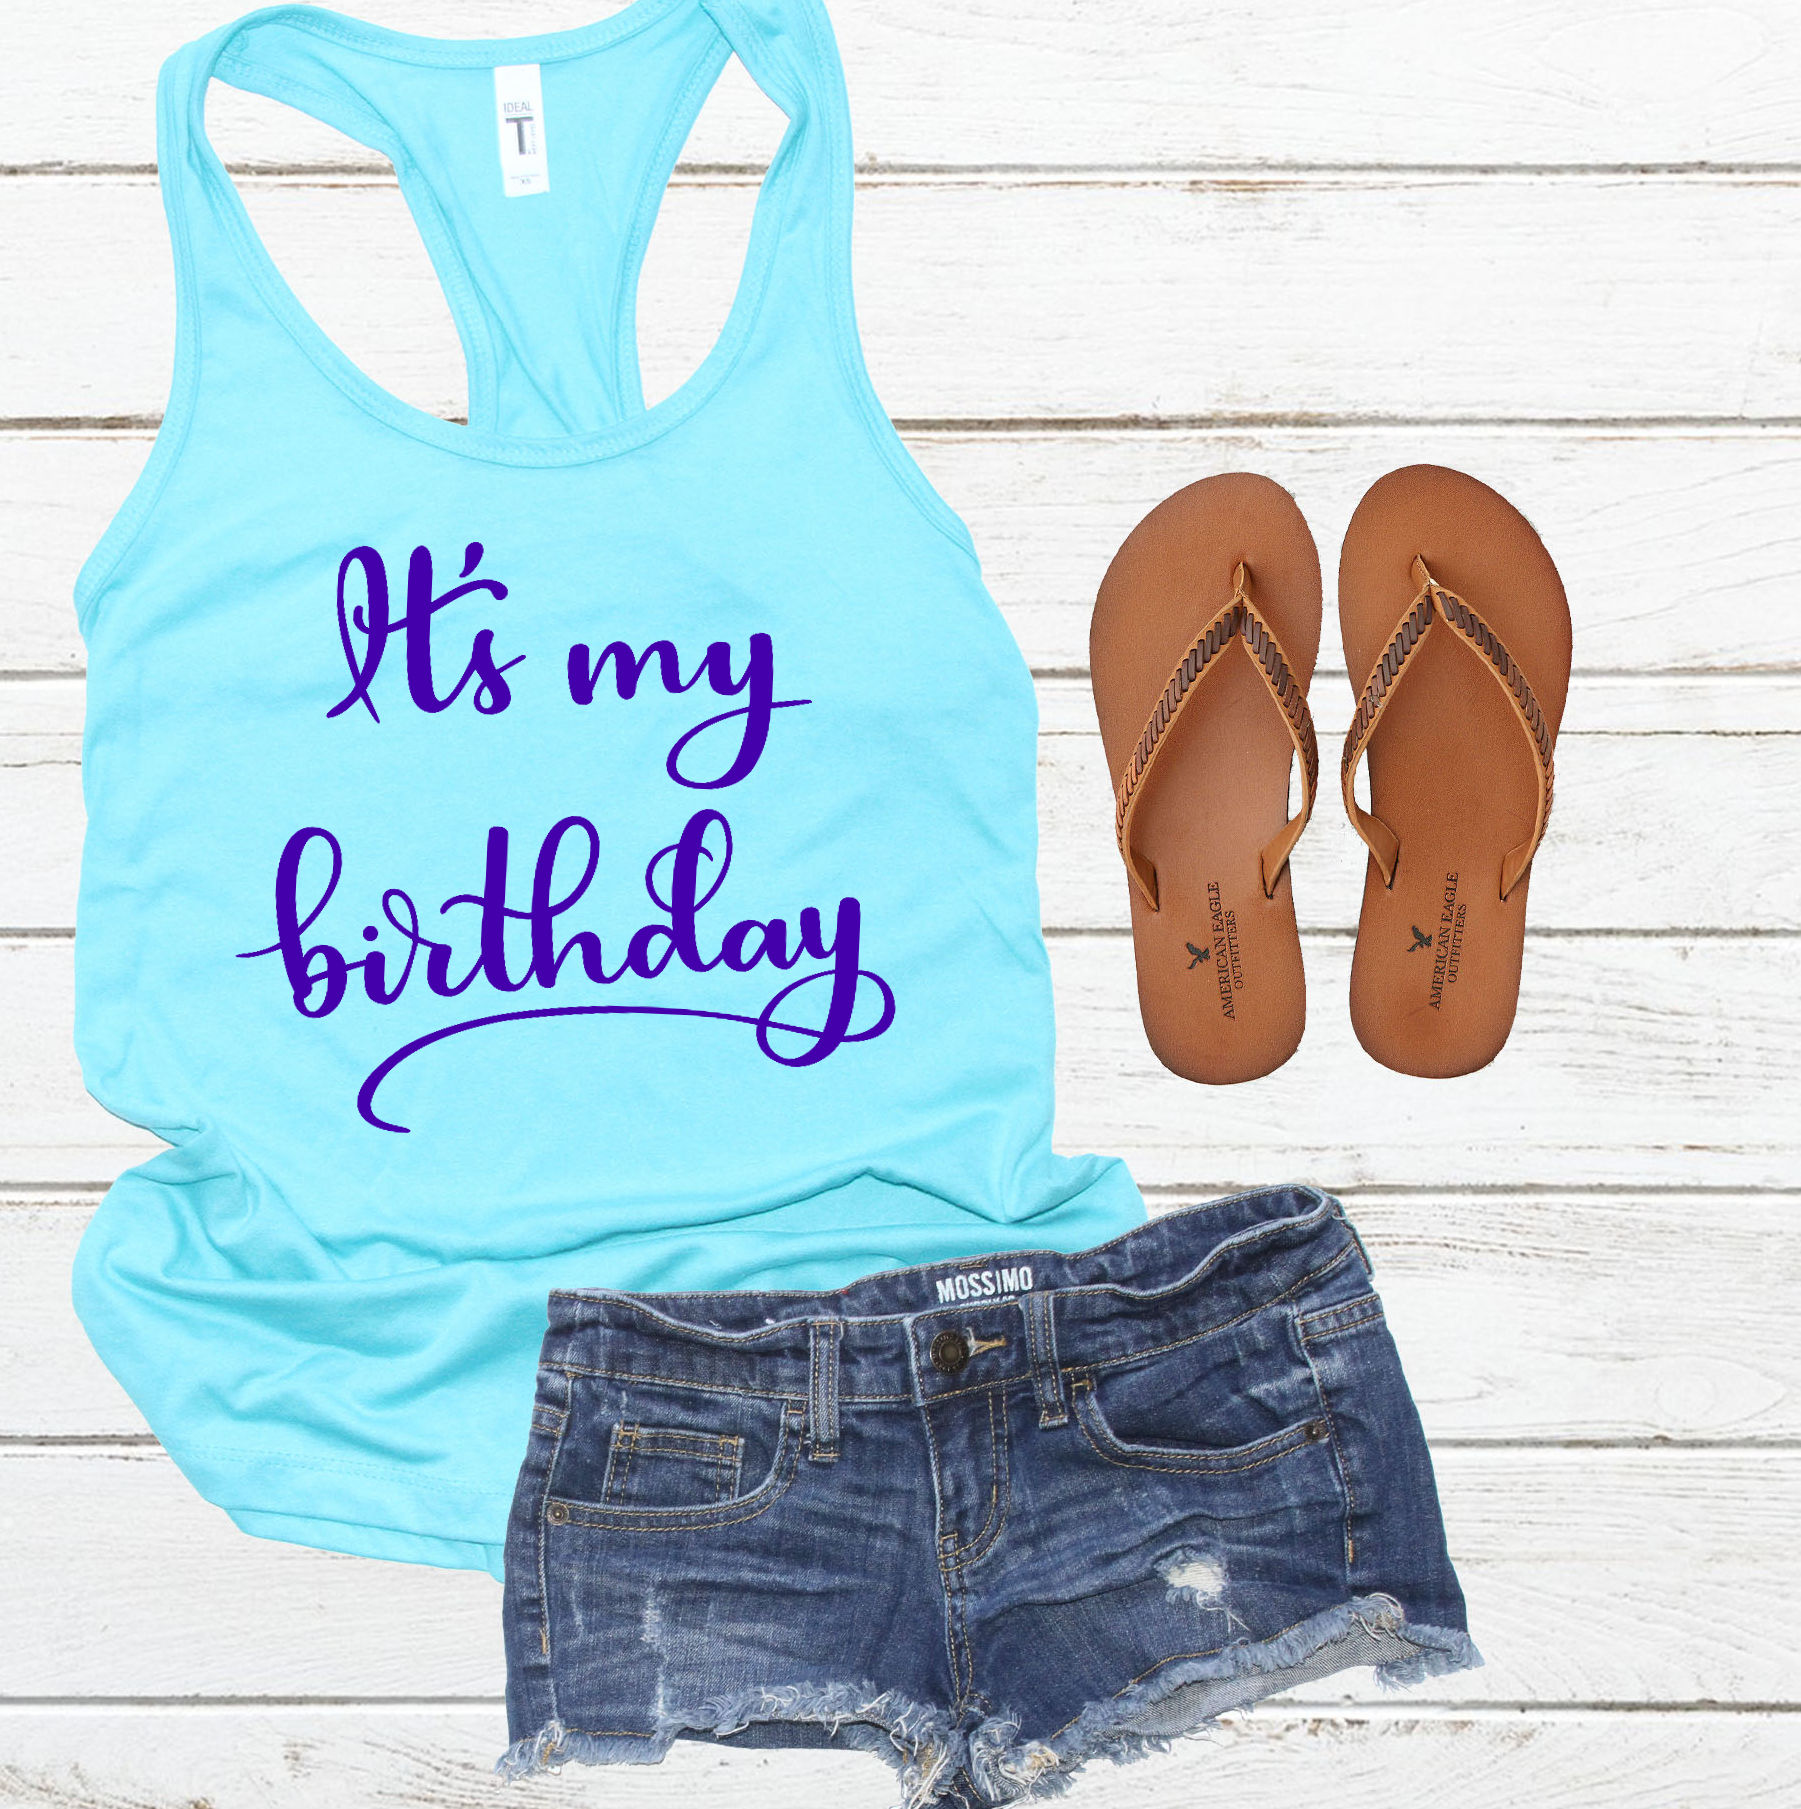 Birthday SVG Bundle - 4 birthday SVG files, Handlettered example image 6